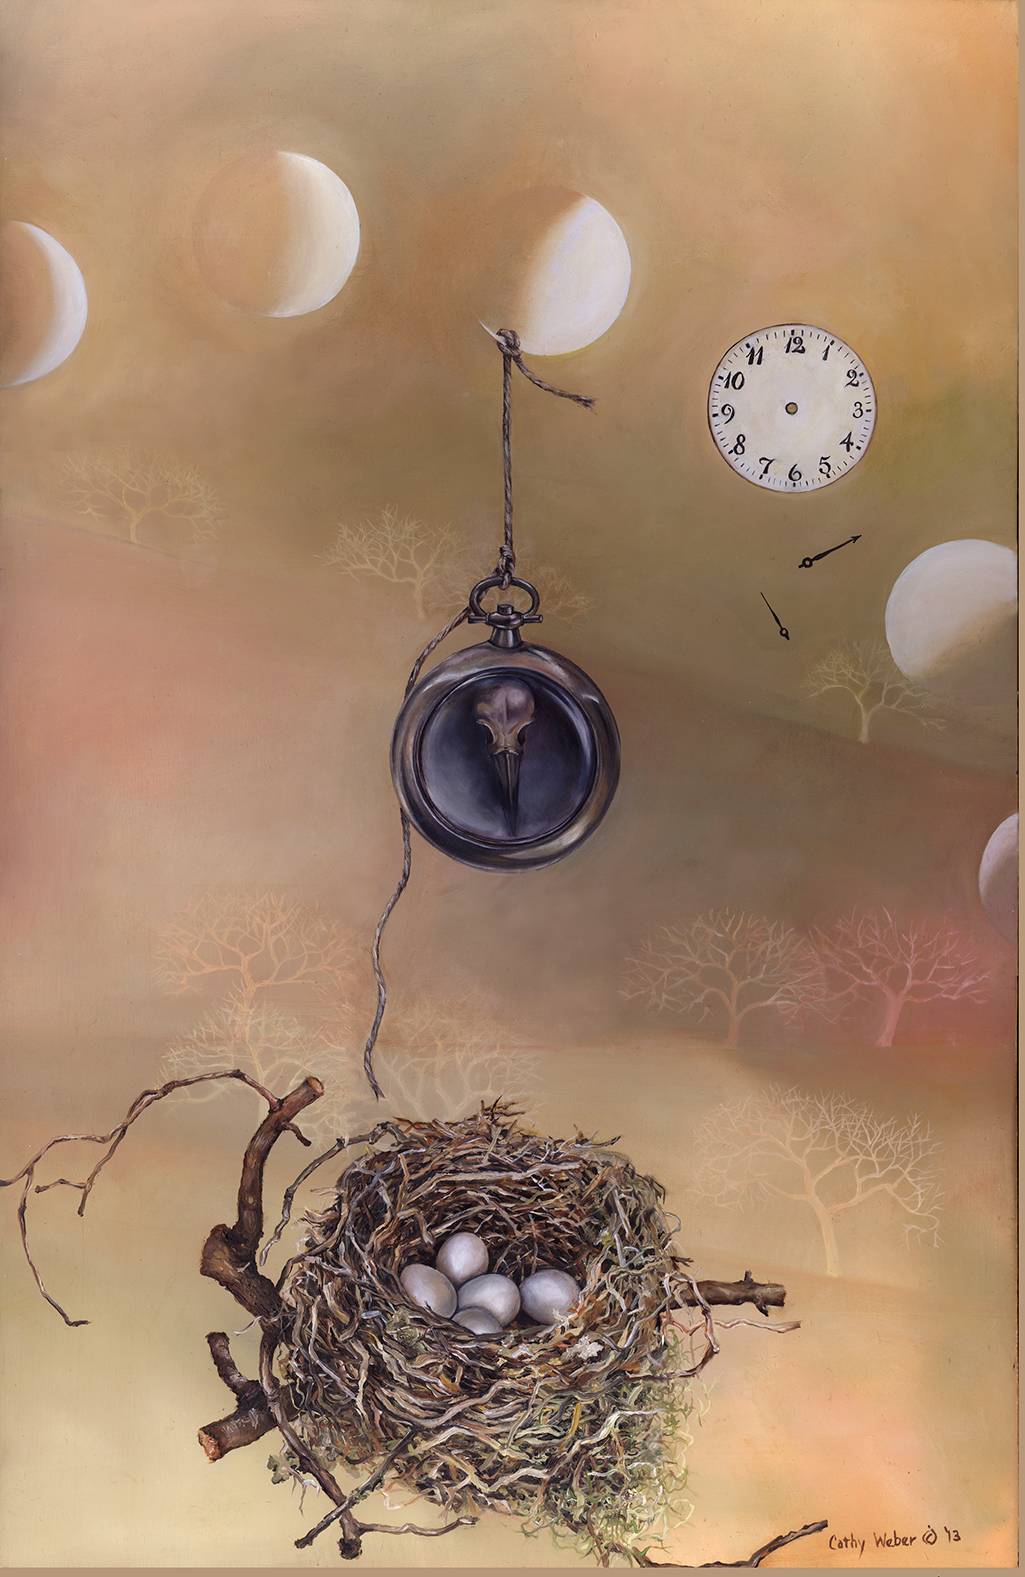 cathy weber - oil painting - Montana art - biological art - biological artifacts - object poem – artist - painted poem – art - moon phase – bird nest - nest